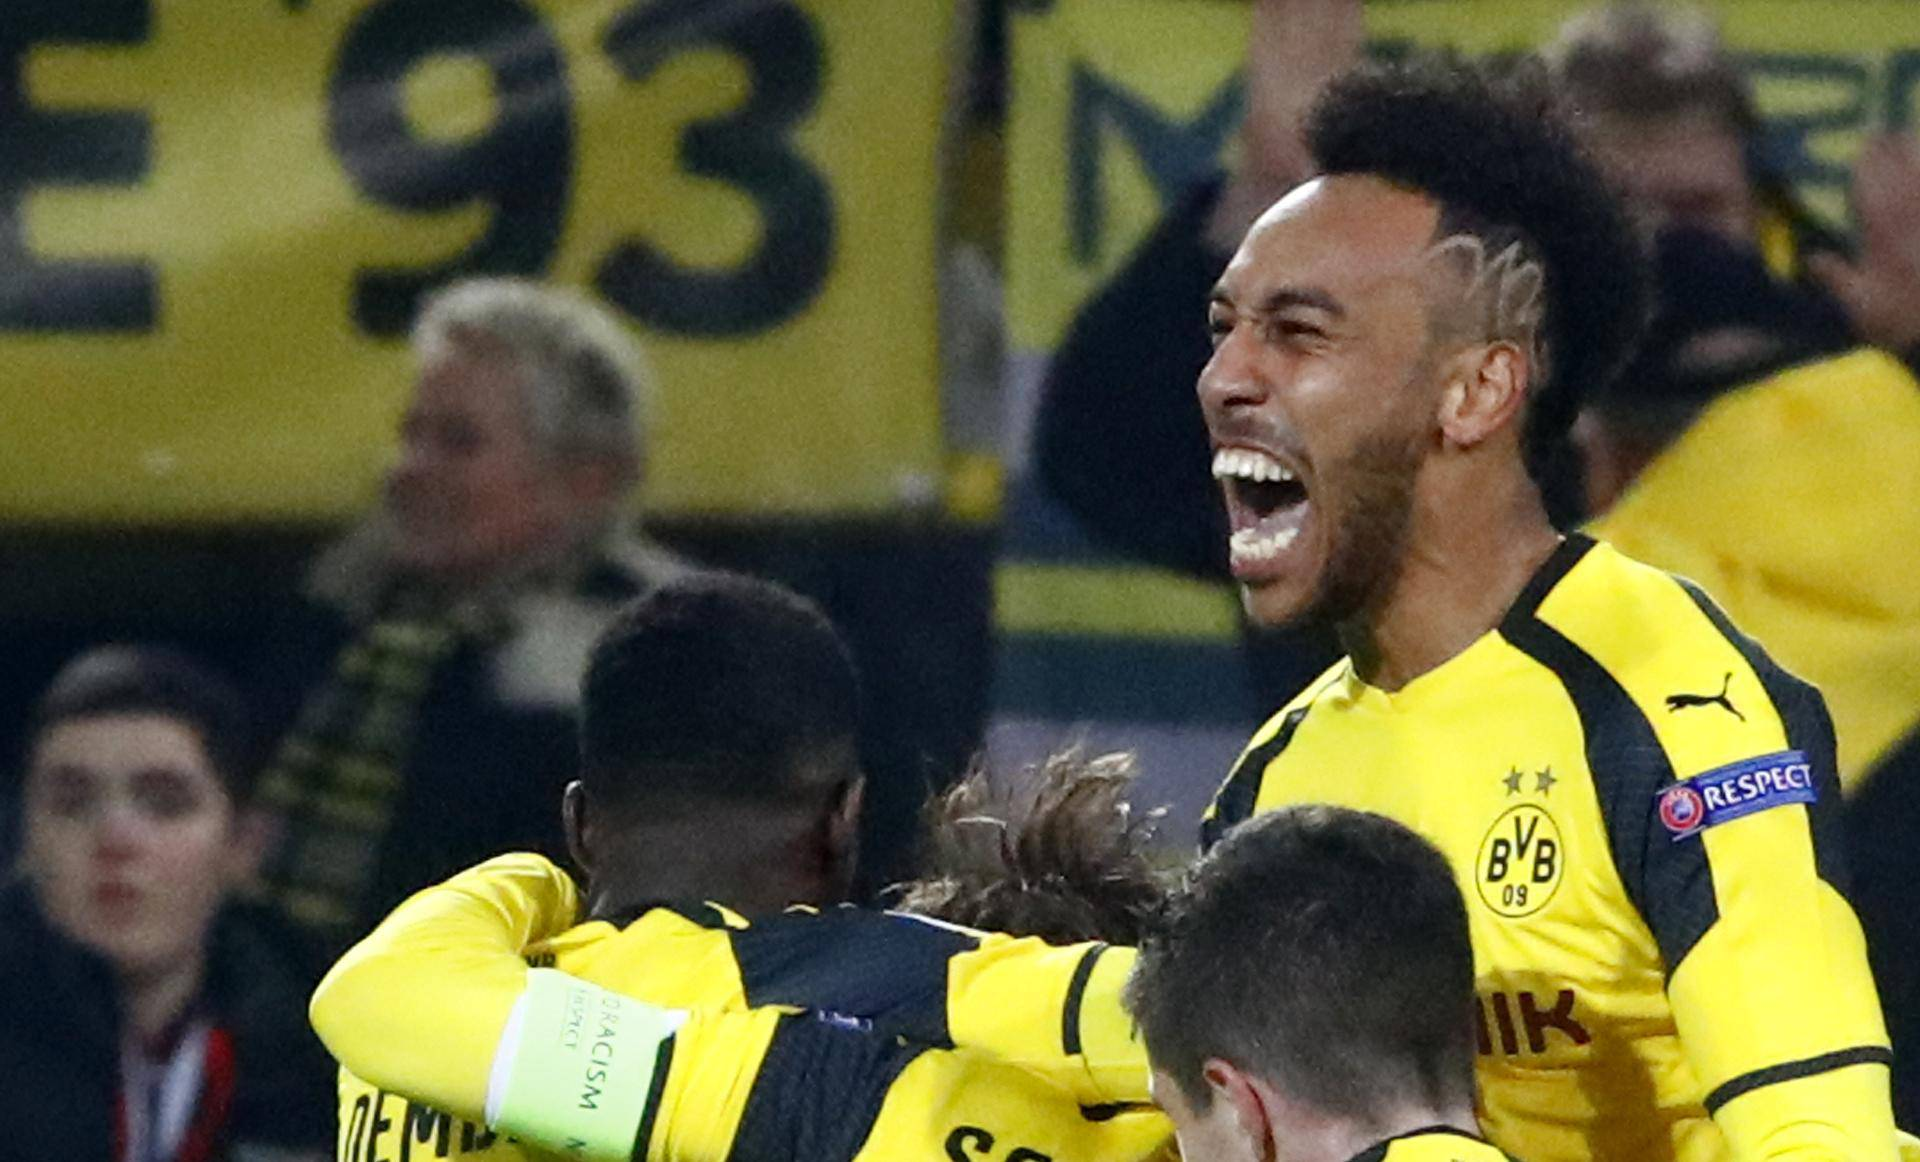 Borussia Dortmund's Pierre-Emerick Aubameyang celebrates scoring their third goal with team mates